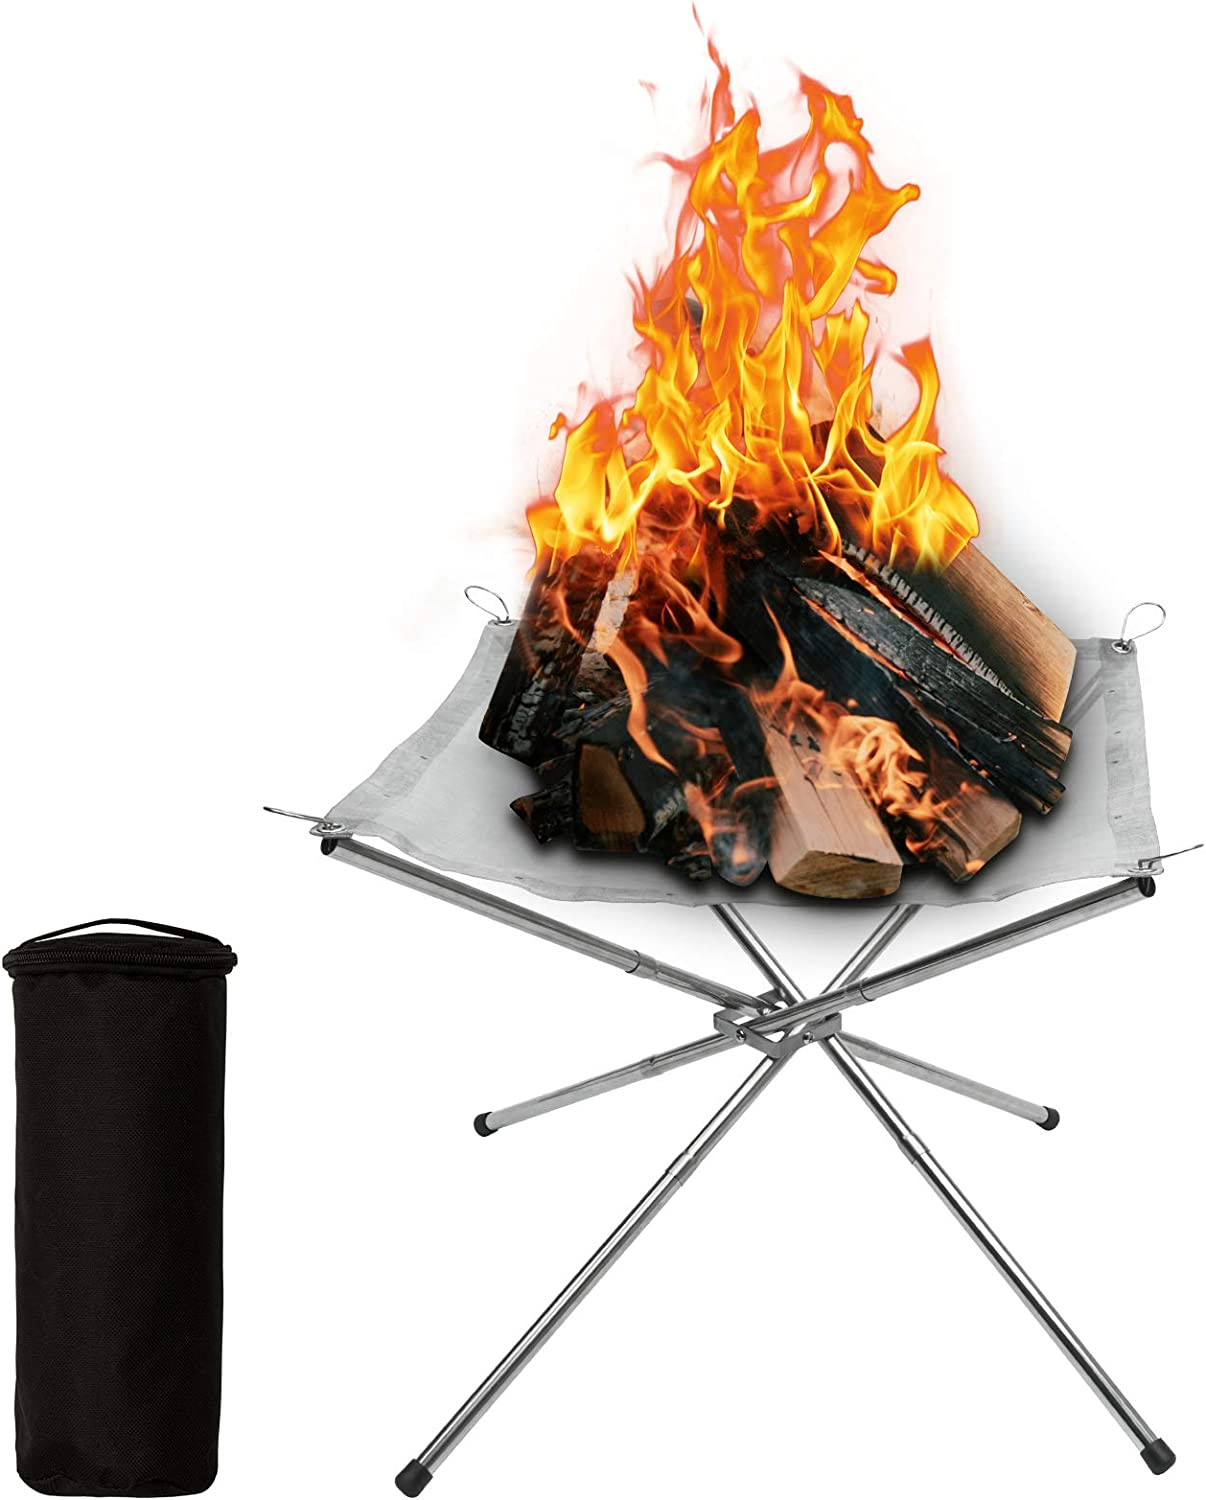 Portable Fire Pit,16.5'' Foldable Stainless Steel Portable Outdoor Camping Fire Pit Steel Mesh Fireplace for Camping Outdoor Patio Backyard and Garden